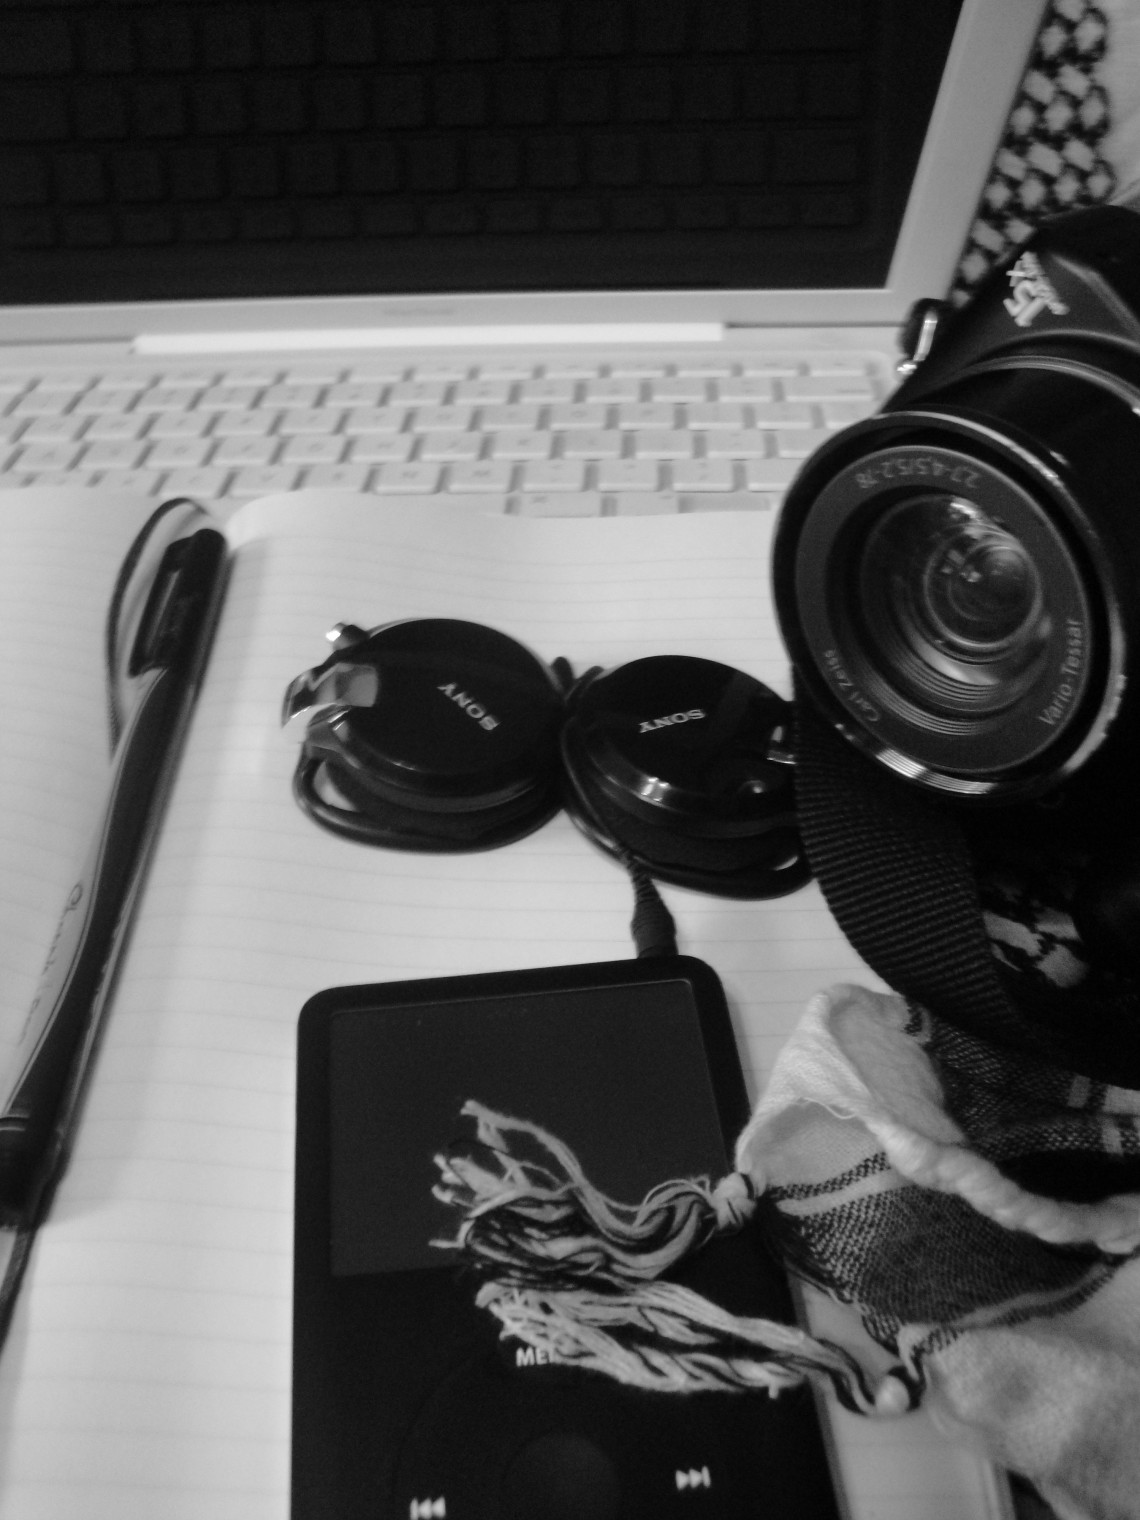 pen and paper and a camera interacting with my laptop